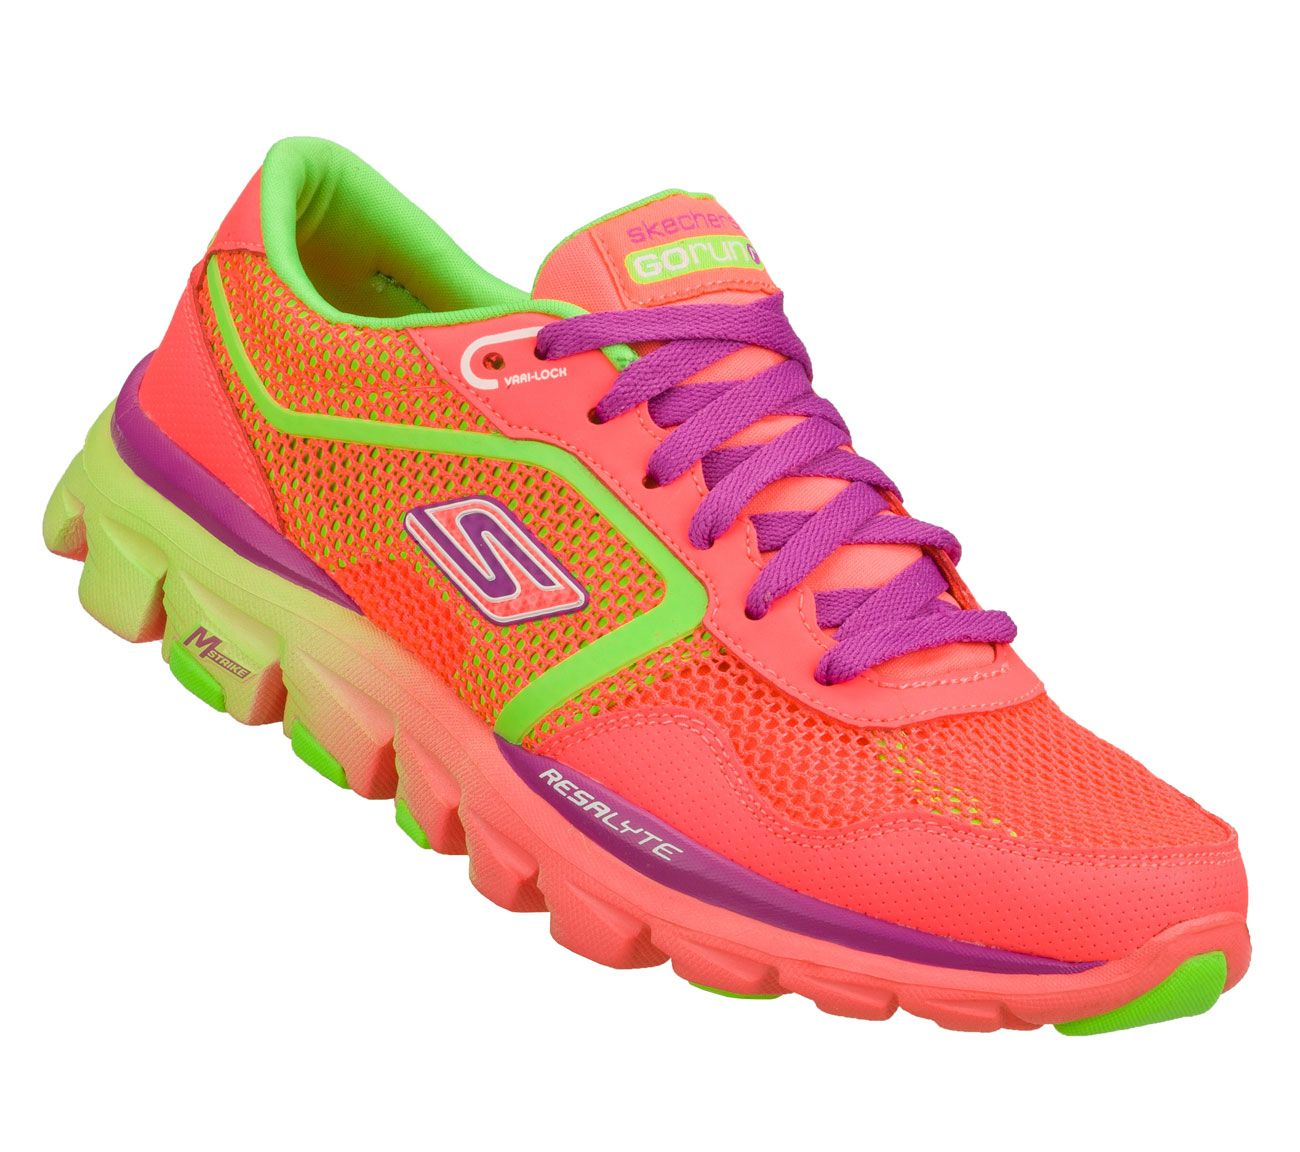 available comfortable sneakers this shoes most training the complex comforter athletic summer